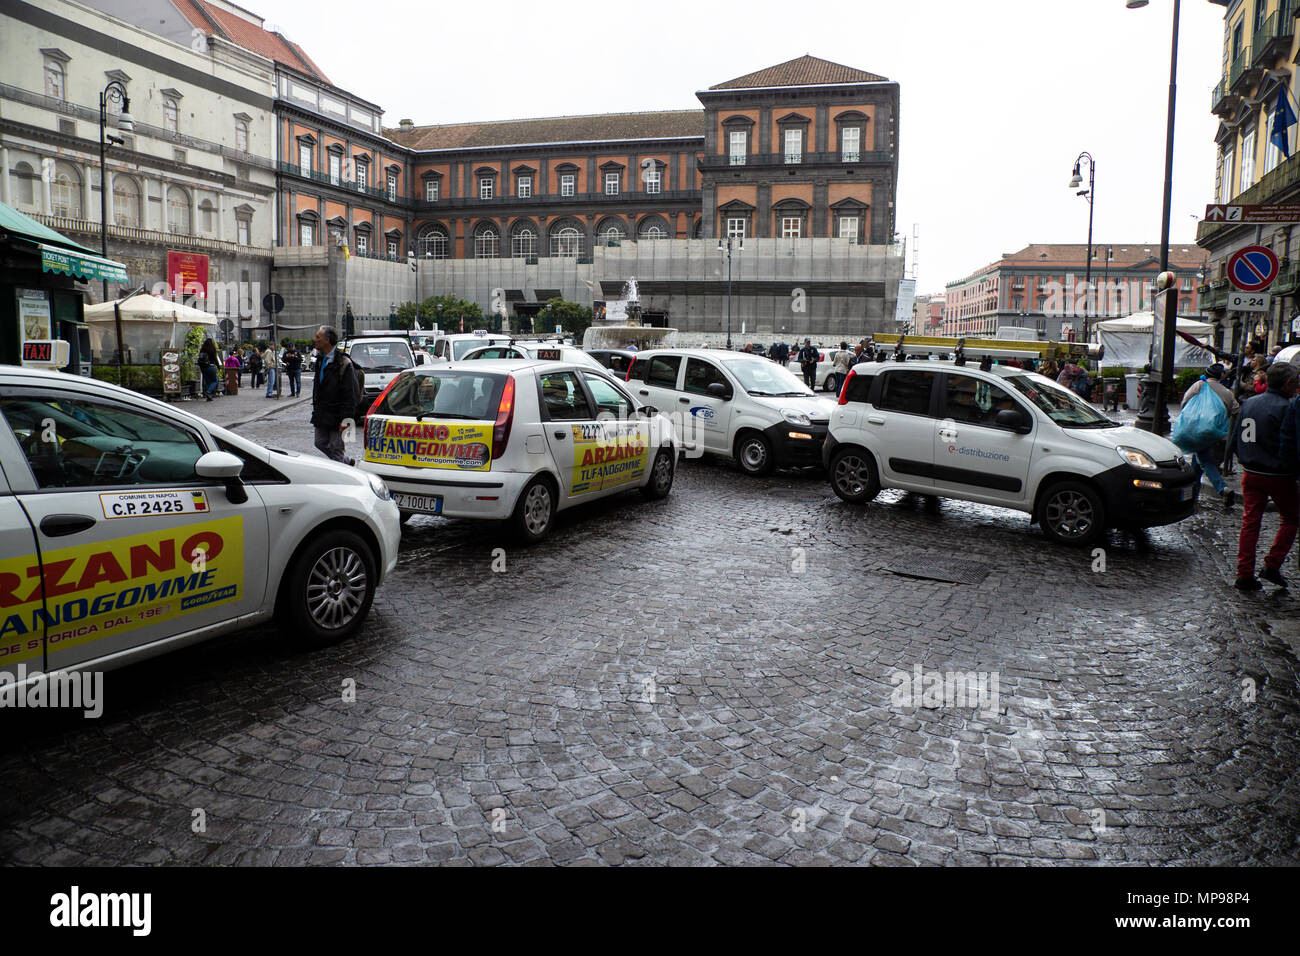 Traffic congestion in the city of Naples, Italy - Stock Image